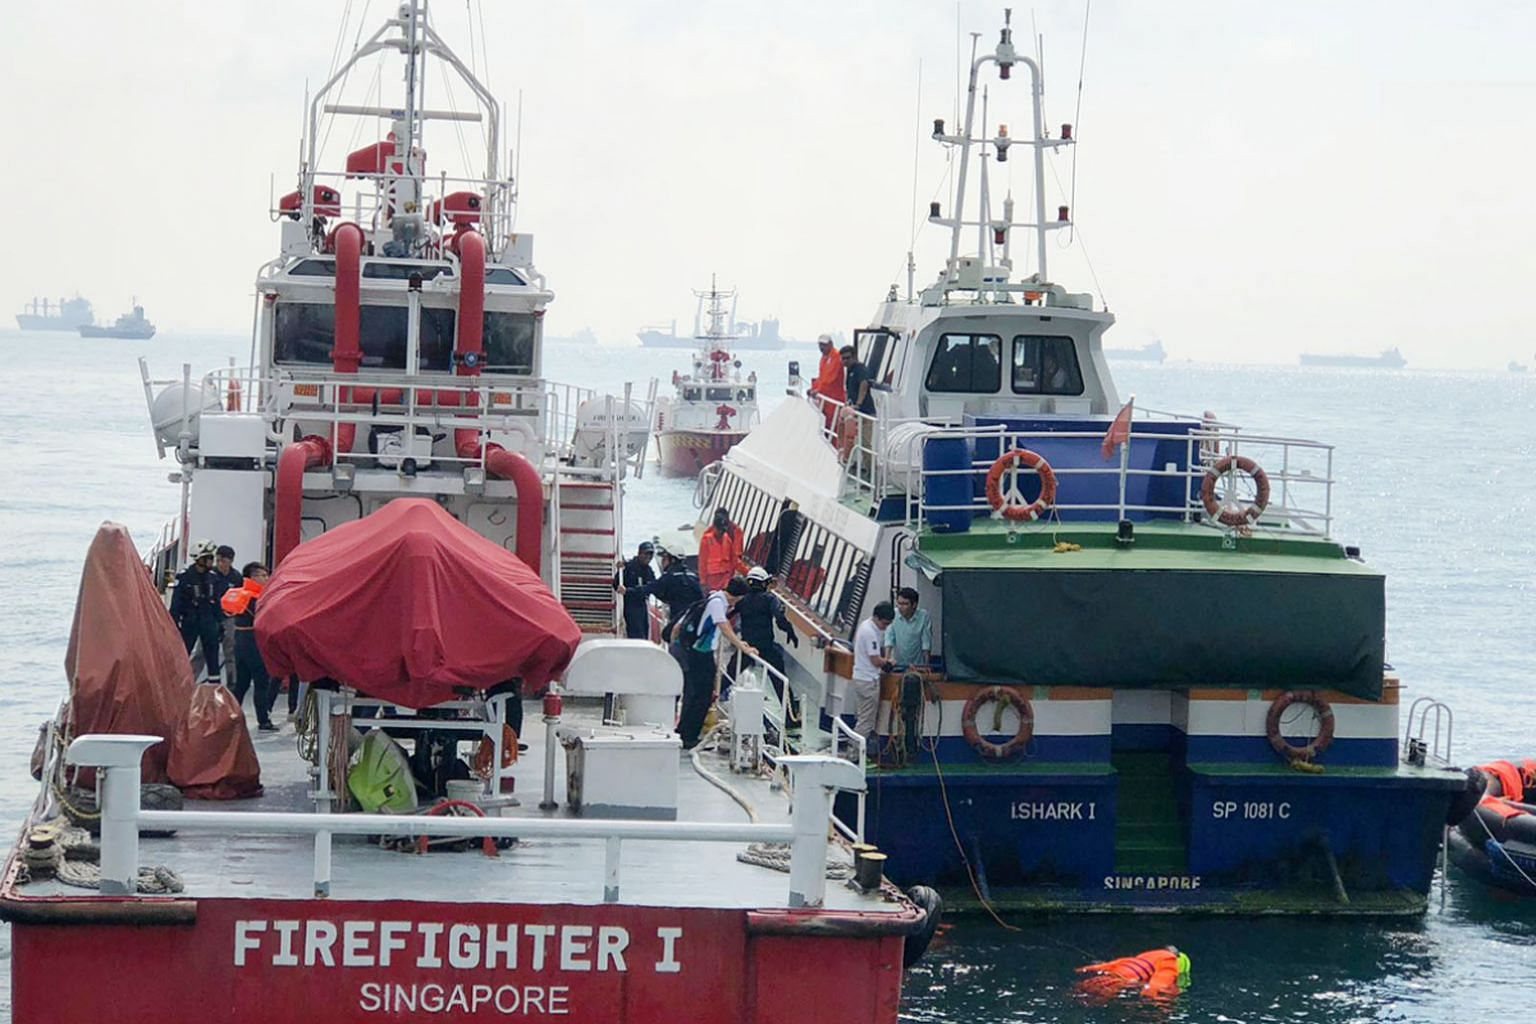 The Maritime and Port Authority of Singapore held an exercise last week to test how Singapore agencies respond to ferry accidents in the port. Singapore is also working with Indonesia to review a joint ferry accident contingency plan.